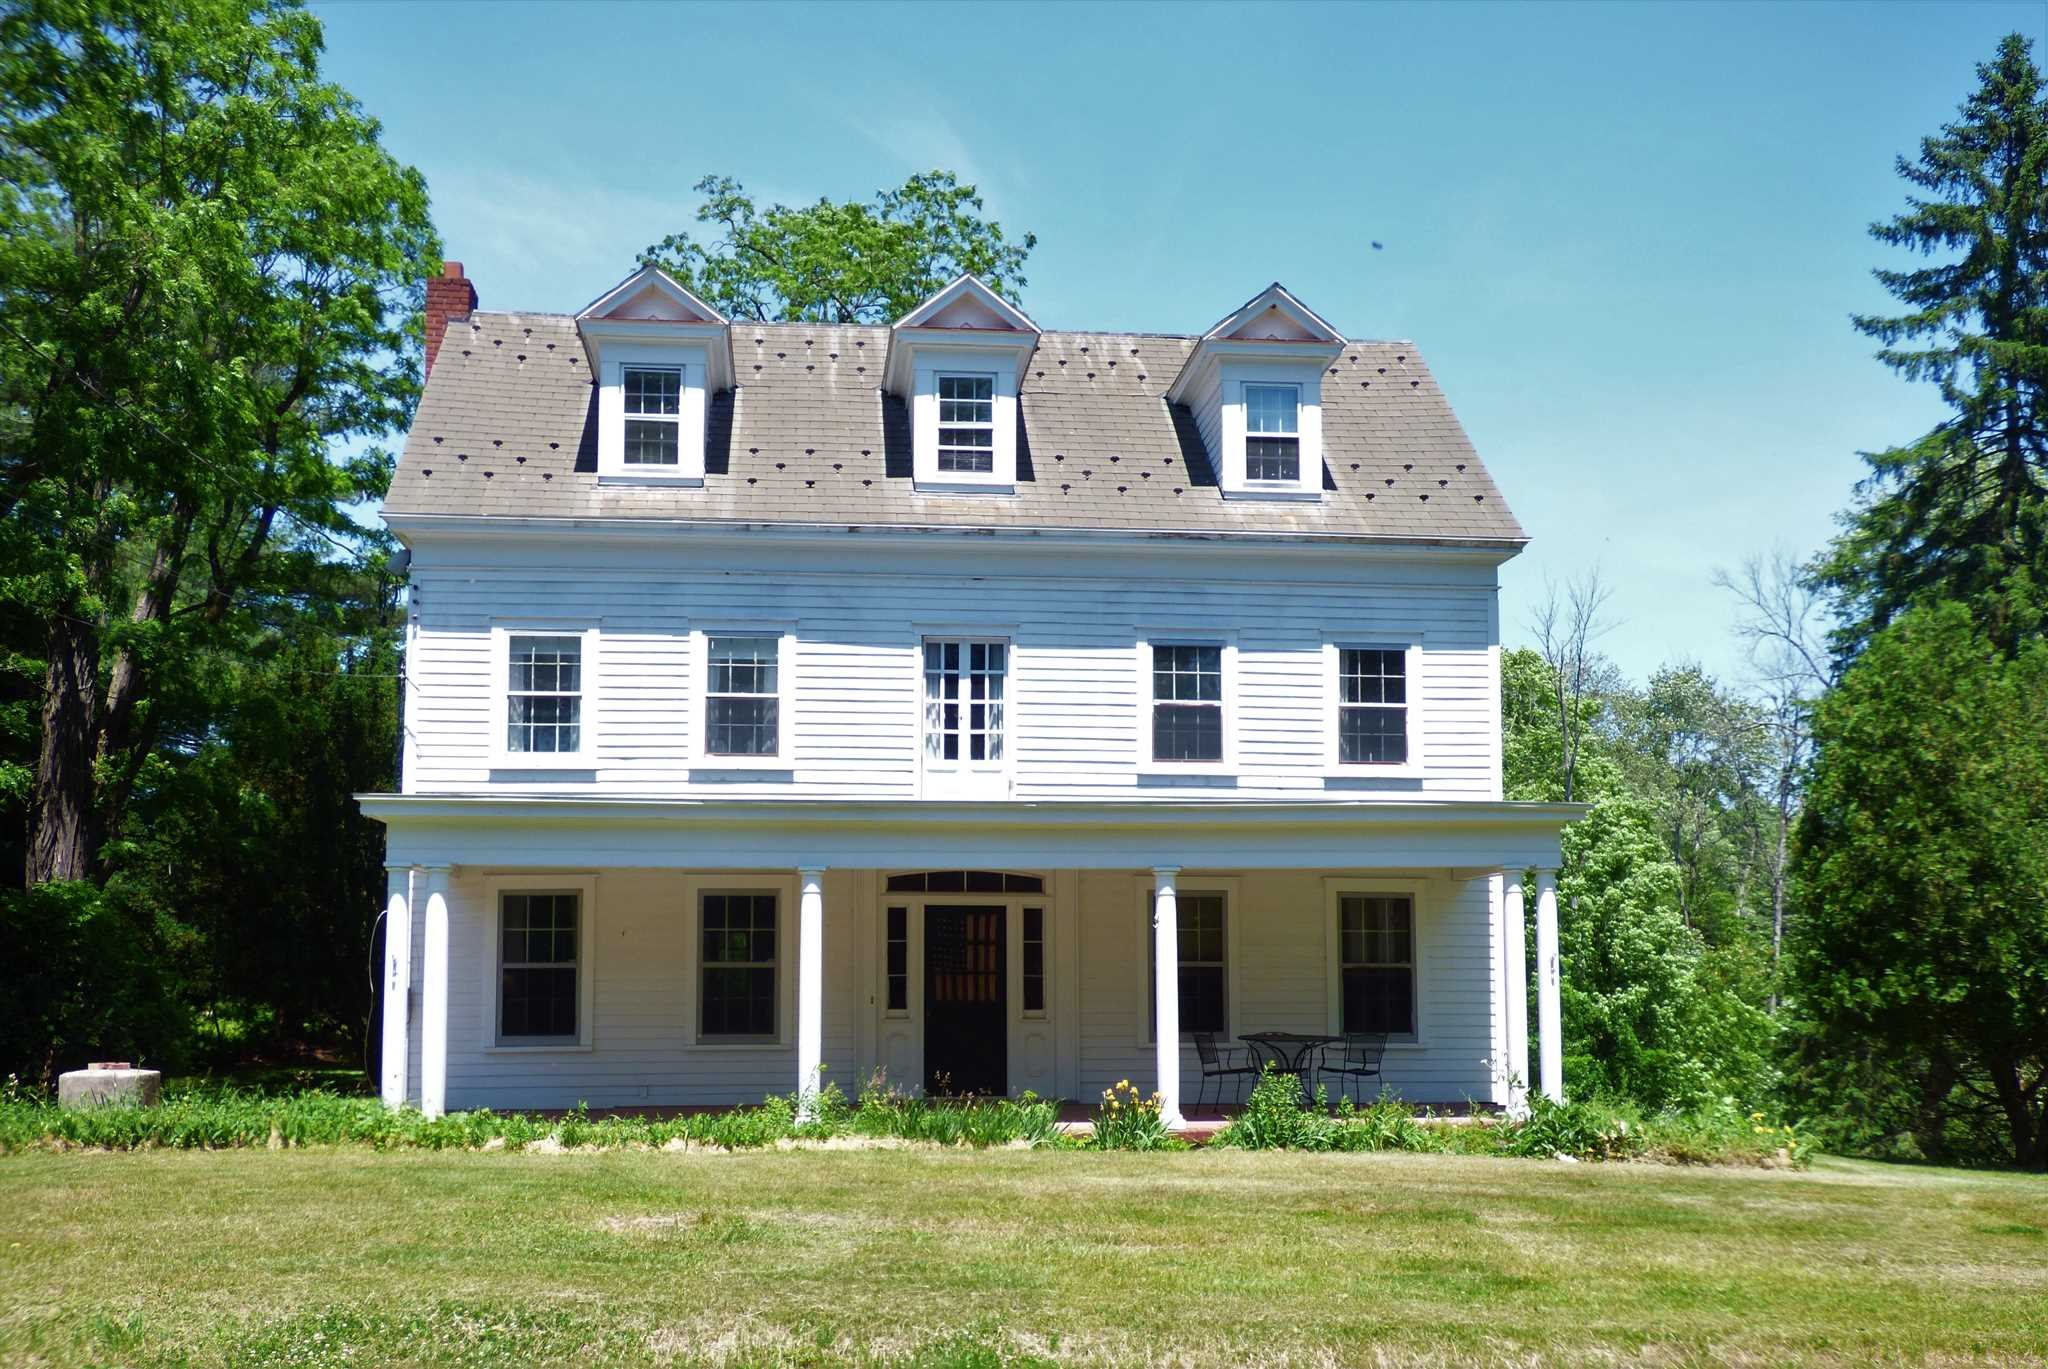 Single Family Home for Sale at 403 MILLS CROSS Road 403 MILLS CROSS Road Hyde Park, New York 12580 United States